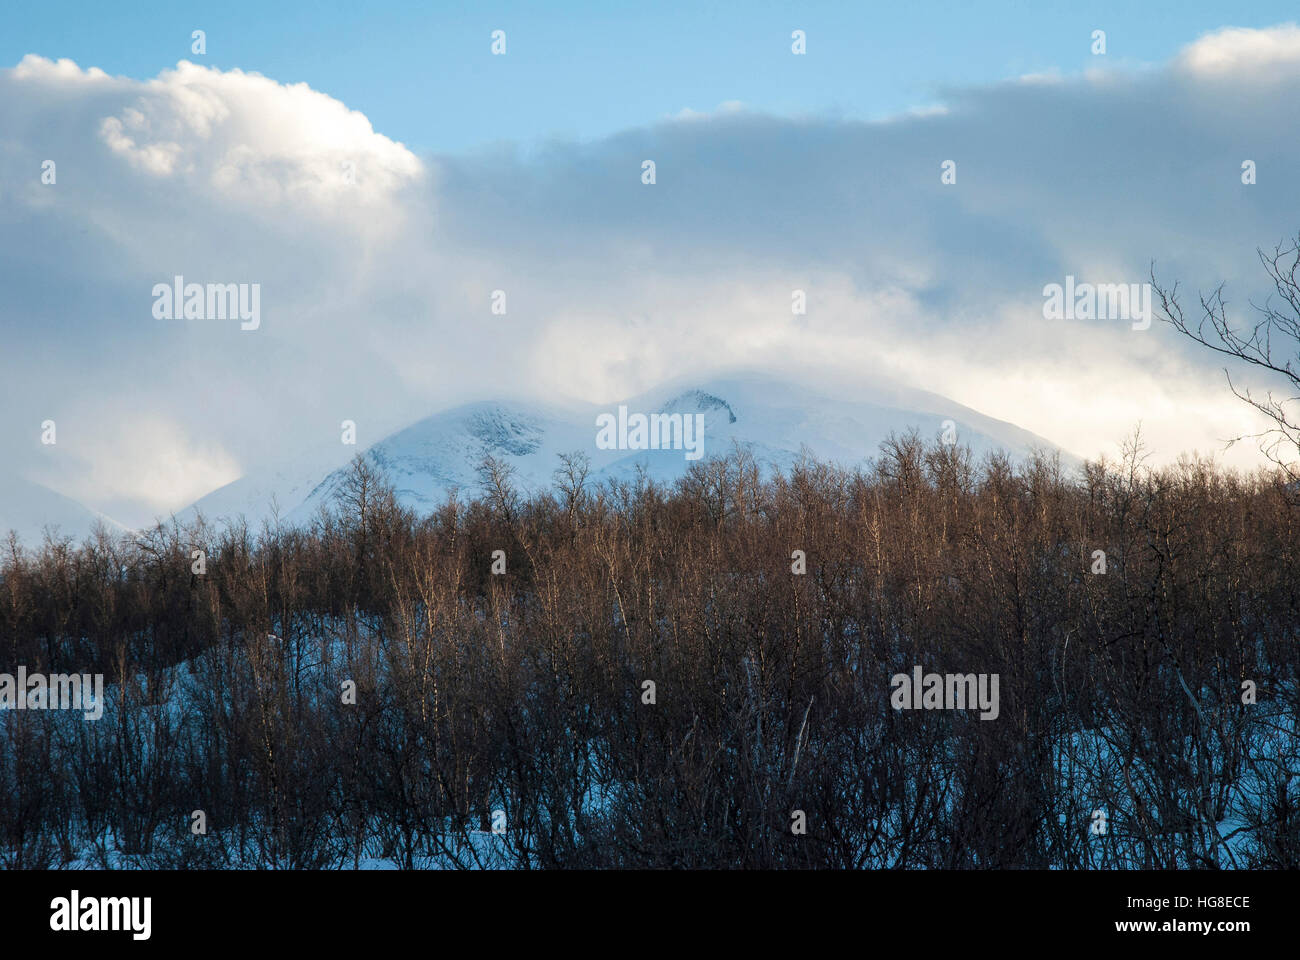 Dried plants on field against cloudy sky during winter - Stock Image